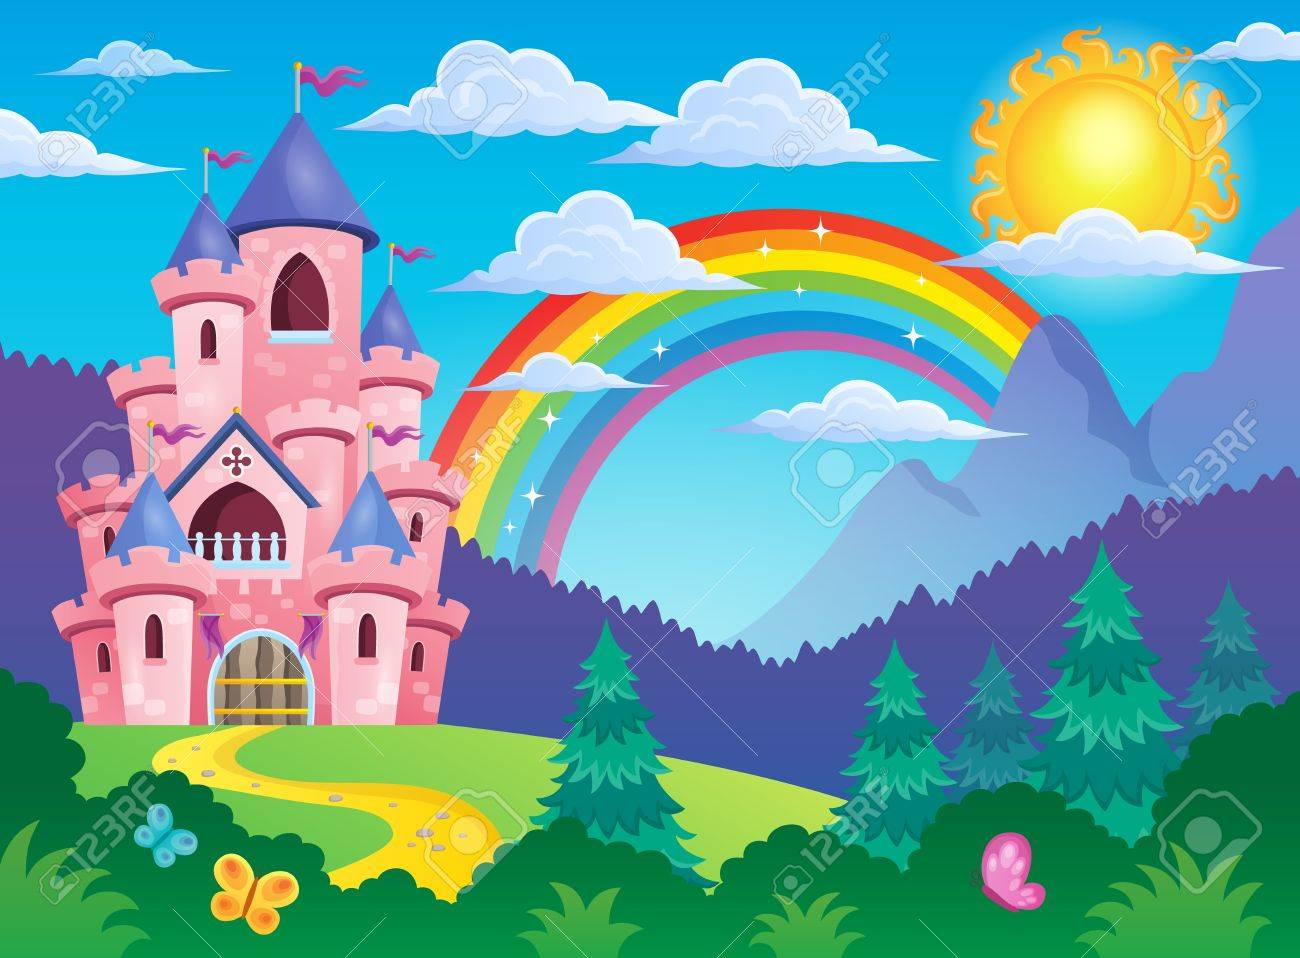 Pink castle theme image 4 - eps10 vector illustration. Stock Vector - 41849140